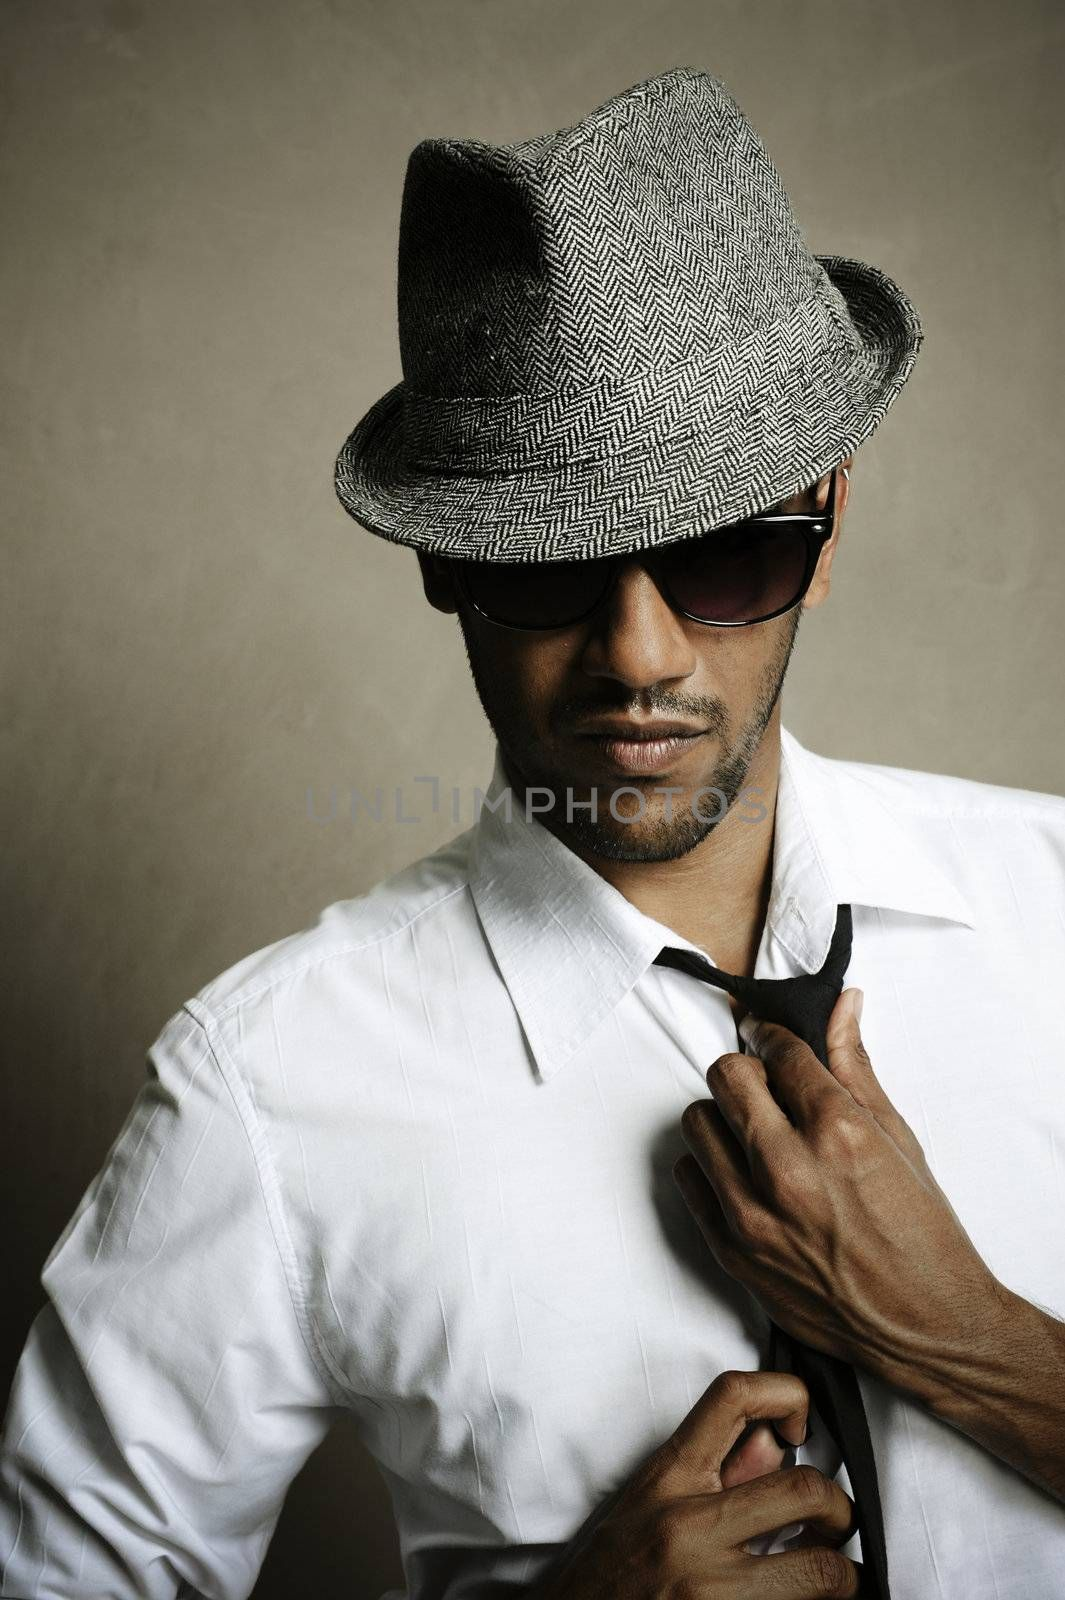 Fashion model shows off his tie, sunglasses and fedora